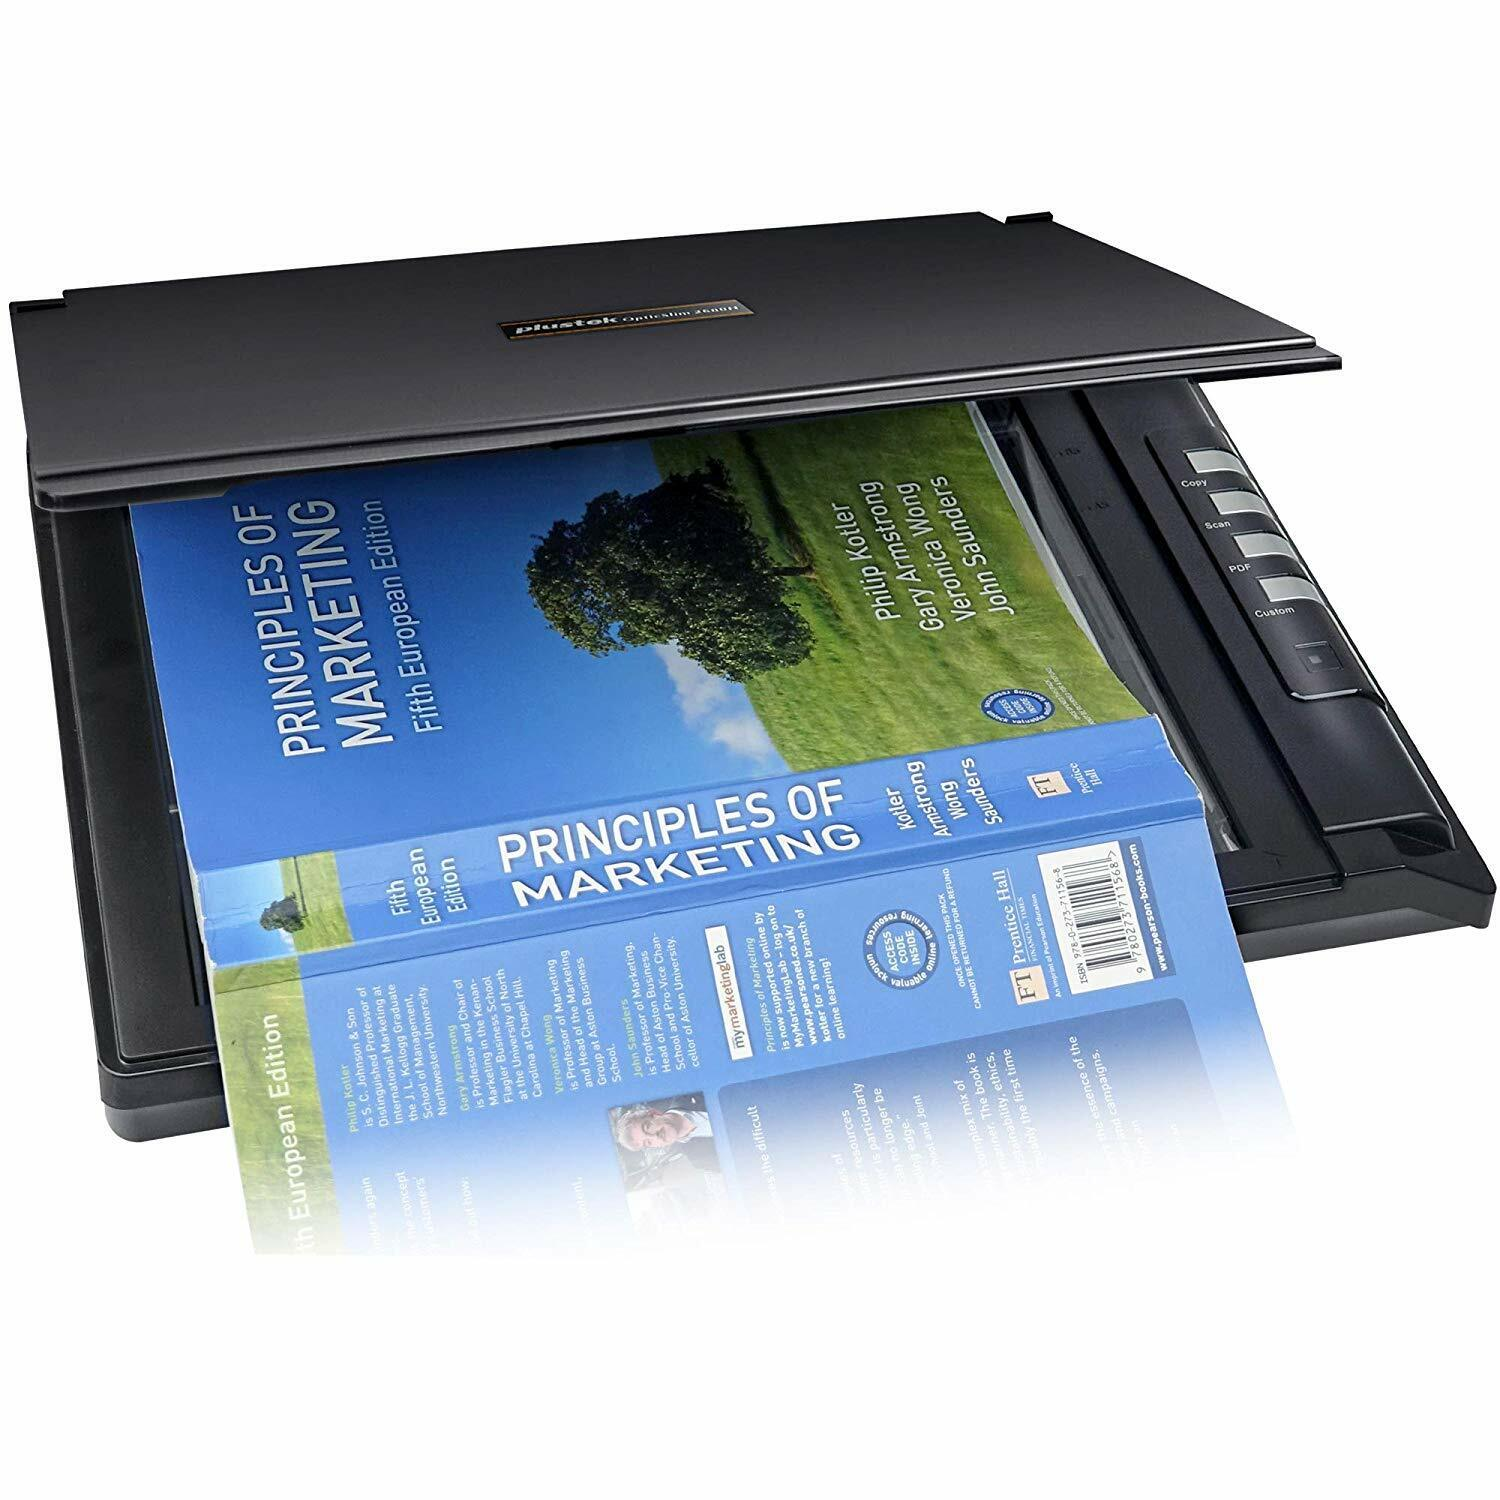 Plustek OpticSilm 2680h - High Speed Flatbed Scanner, 3sec F